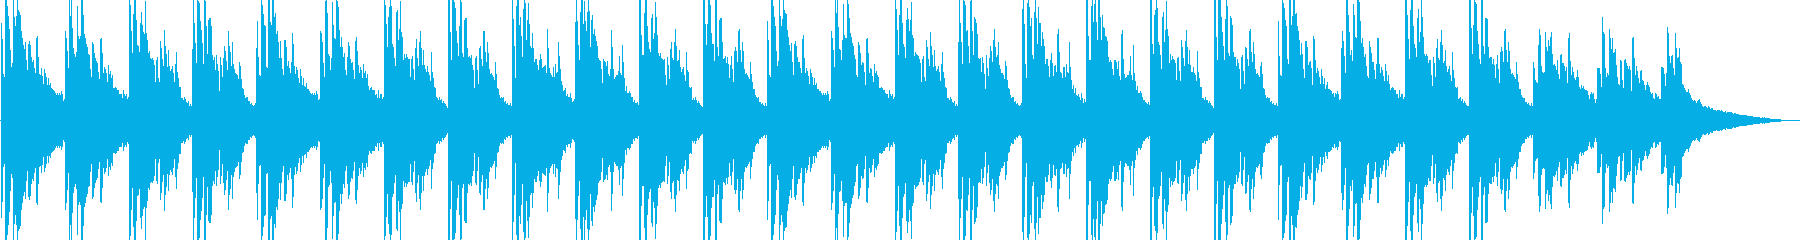 For relaxation, image, game and narration's reproduced waveform